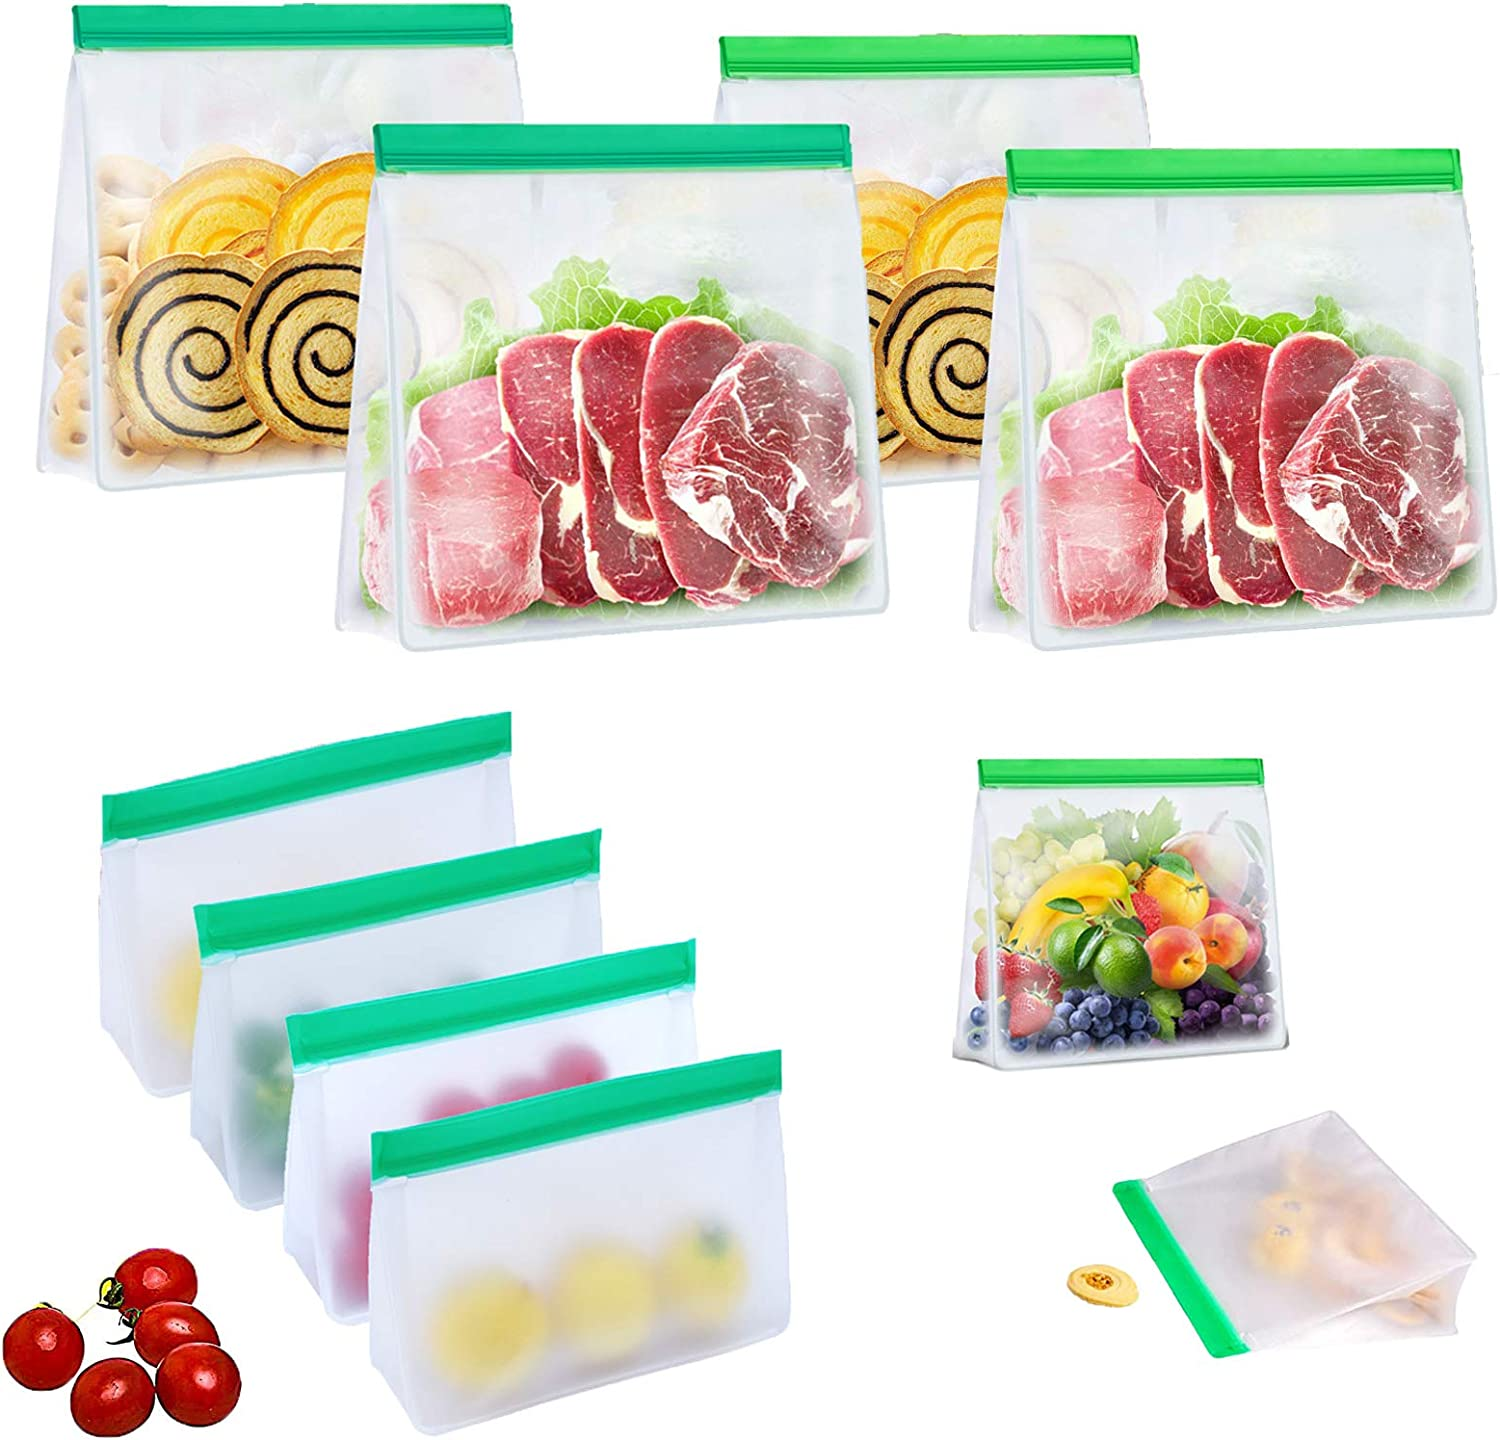 Reusable Food Storage Bags, 10 Pack Stand Up PEVA Leakproof Reusable Grocery Freezer Bags Containers For Meat Fruit Cereal Snacks Food, 4 Larger Lunch Bags+4 Middle Sandwich Bags+2 Snack Bags